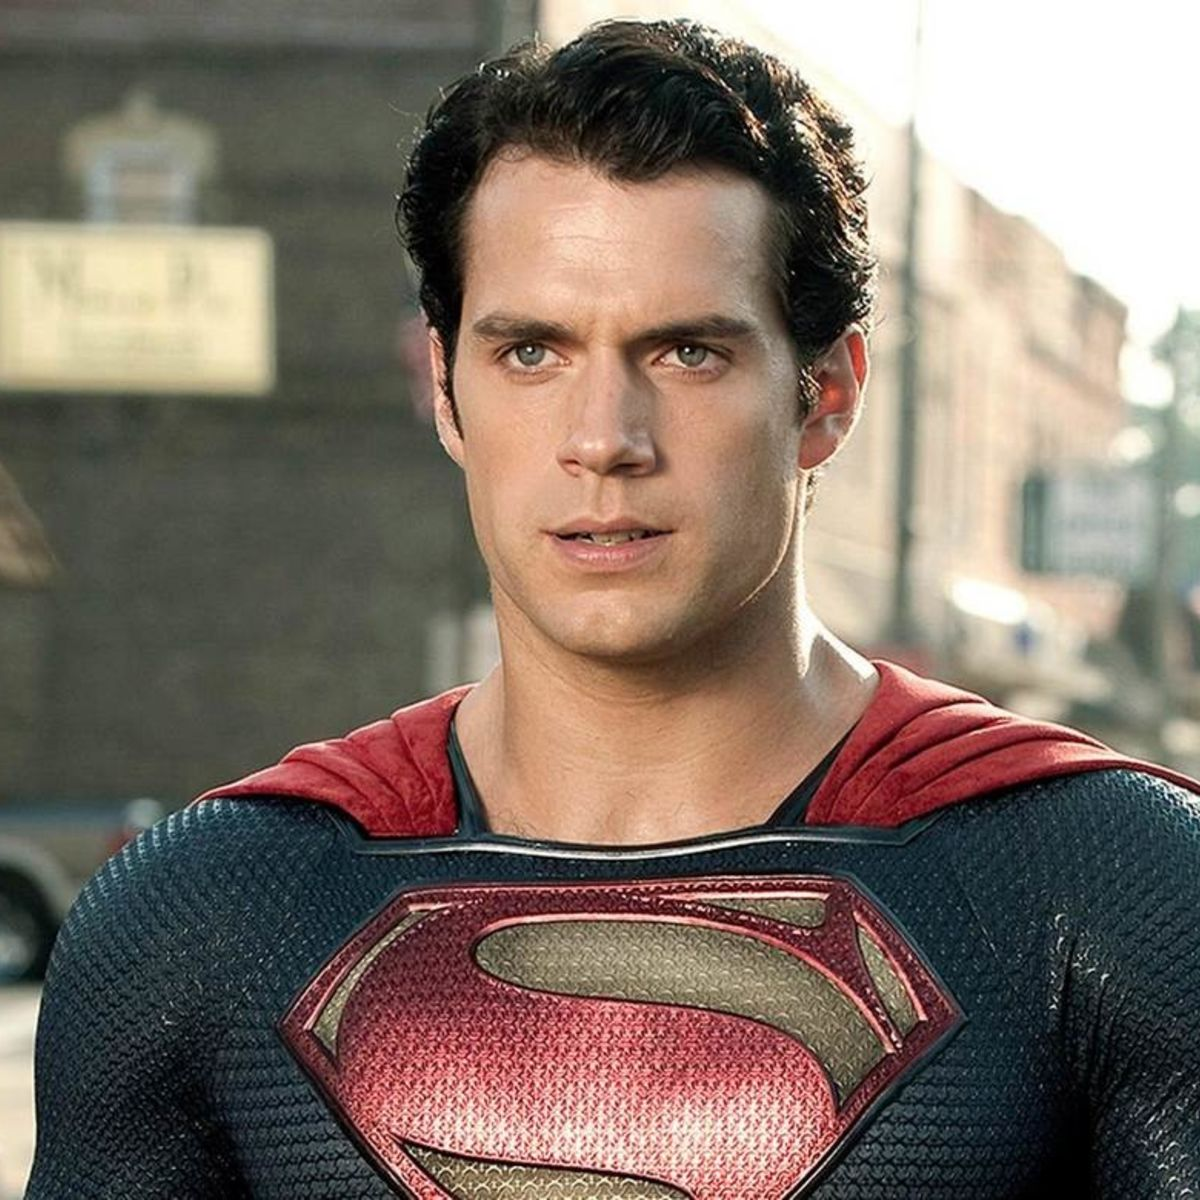 henry cavill wants to play superman again and soon if certain